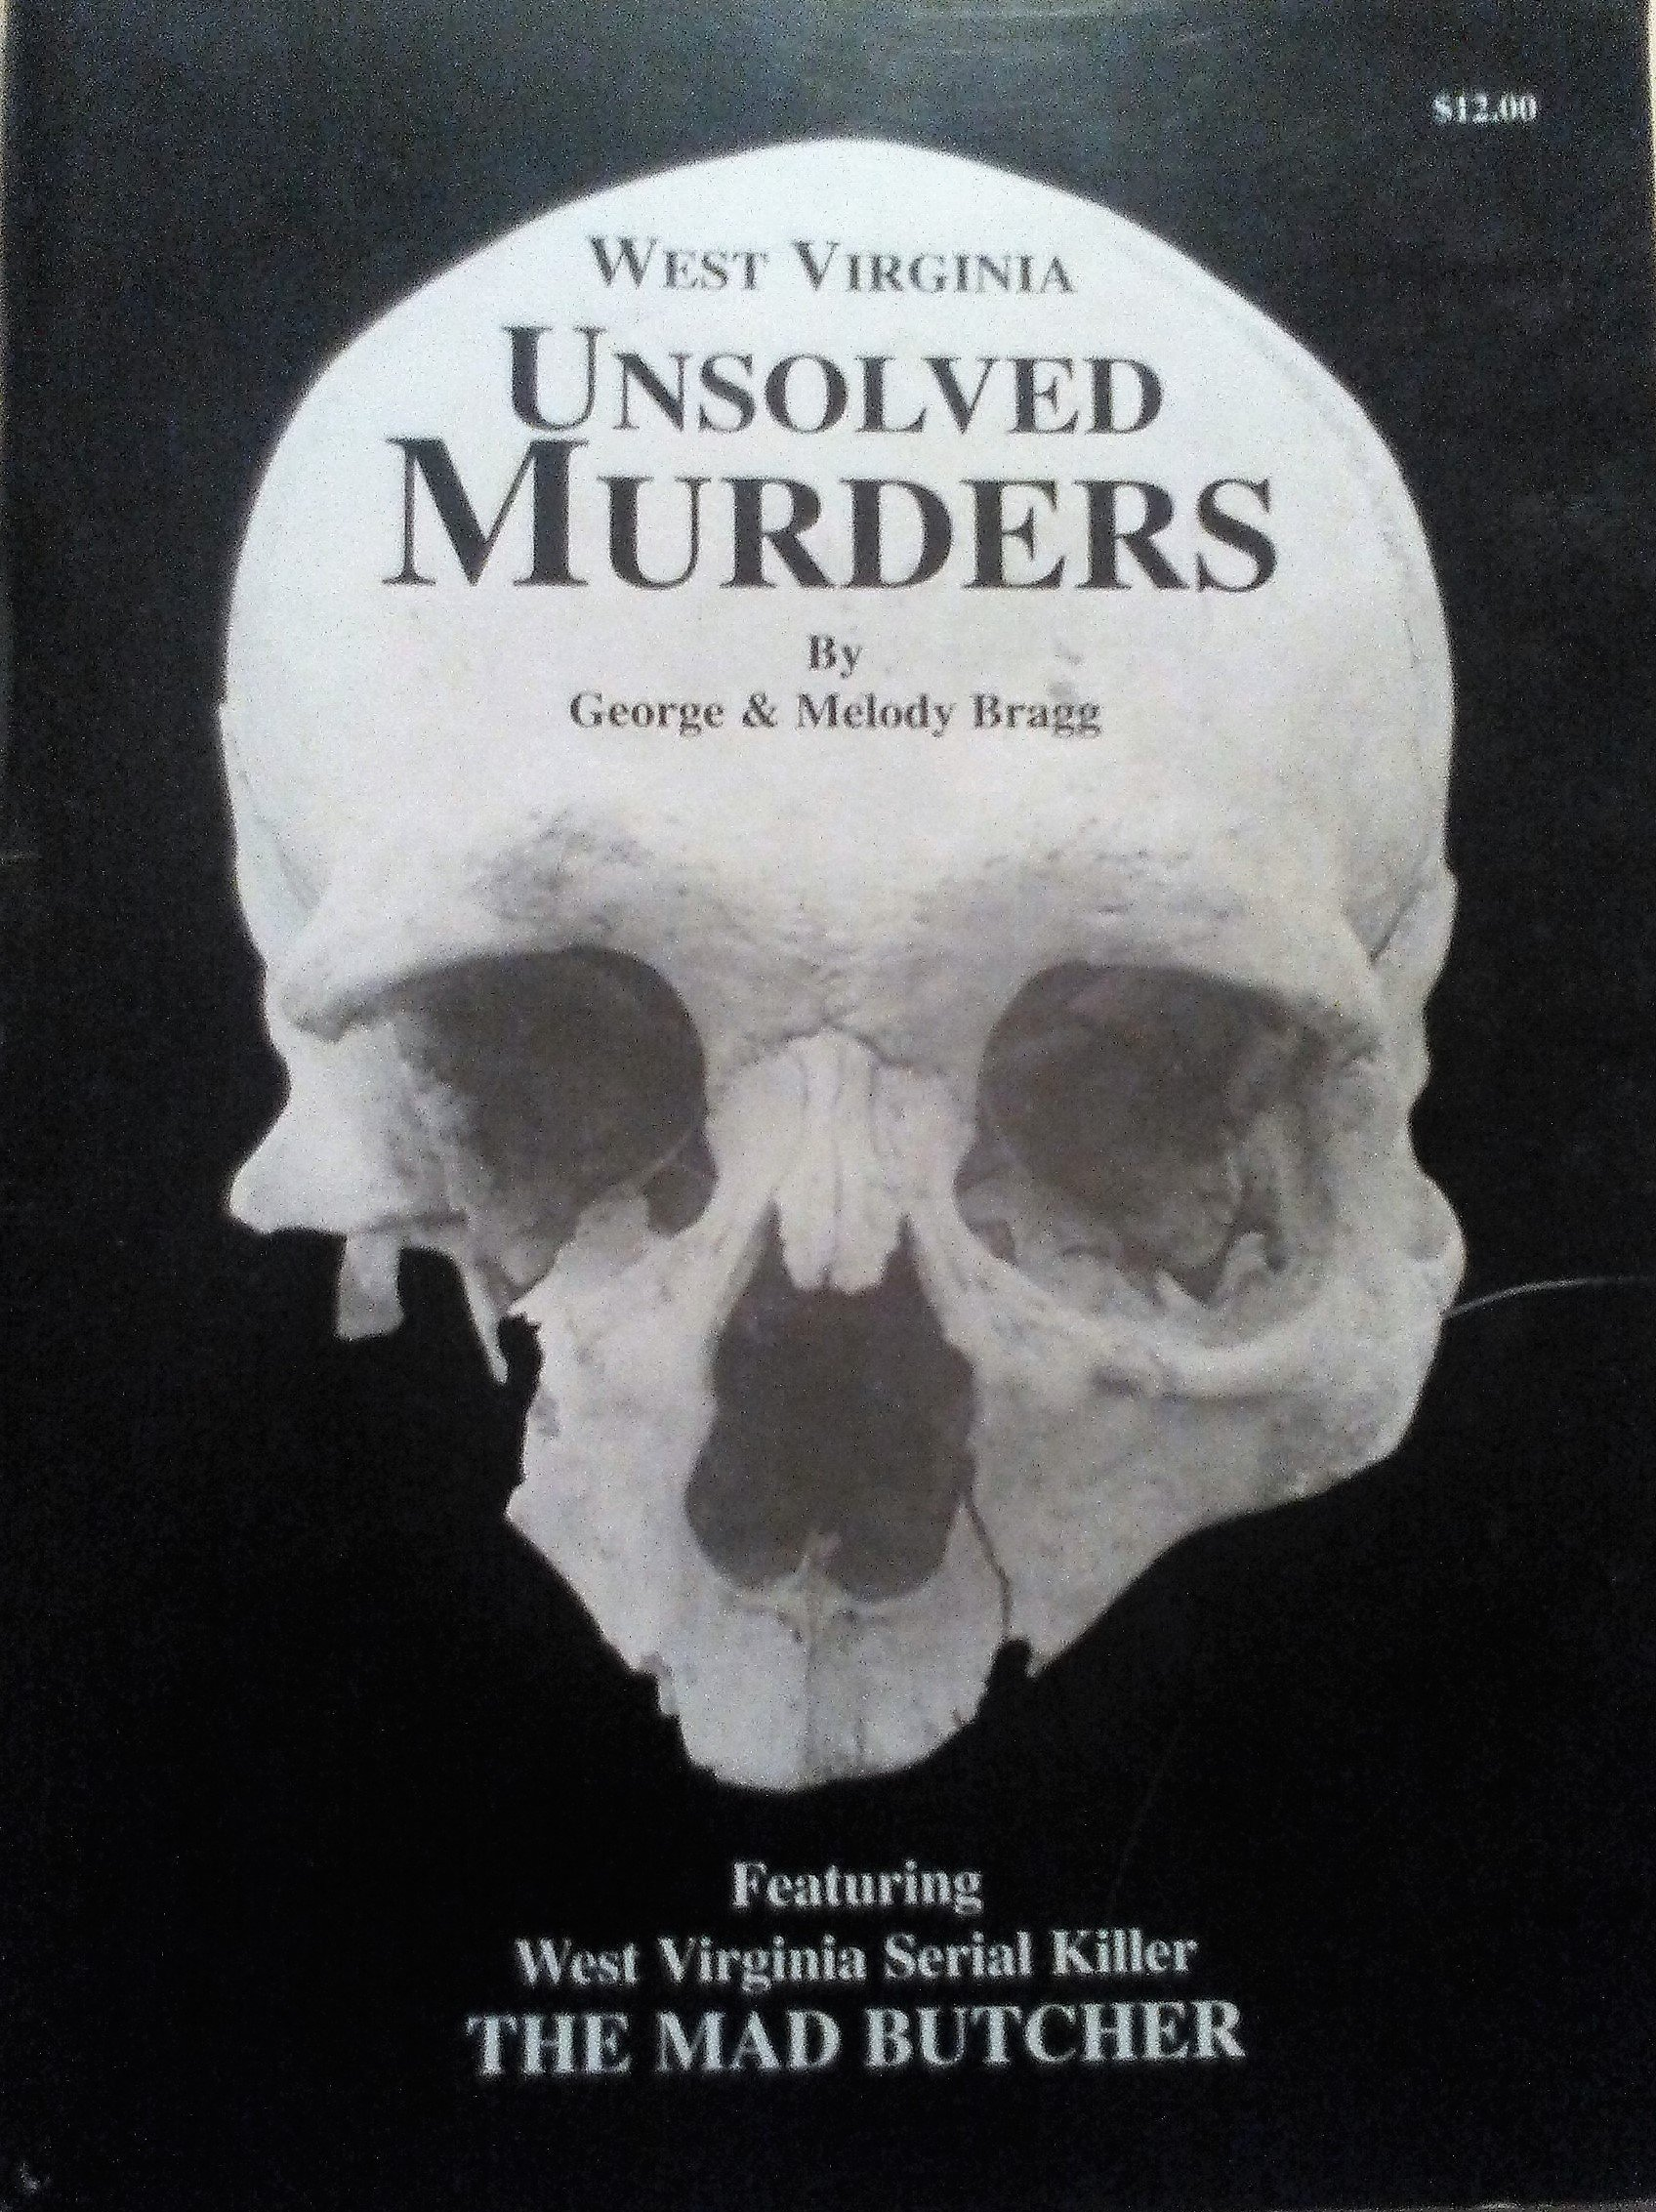 West Virginia unsolved murders: Melody Bragg: 9781882722044